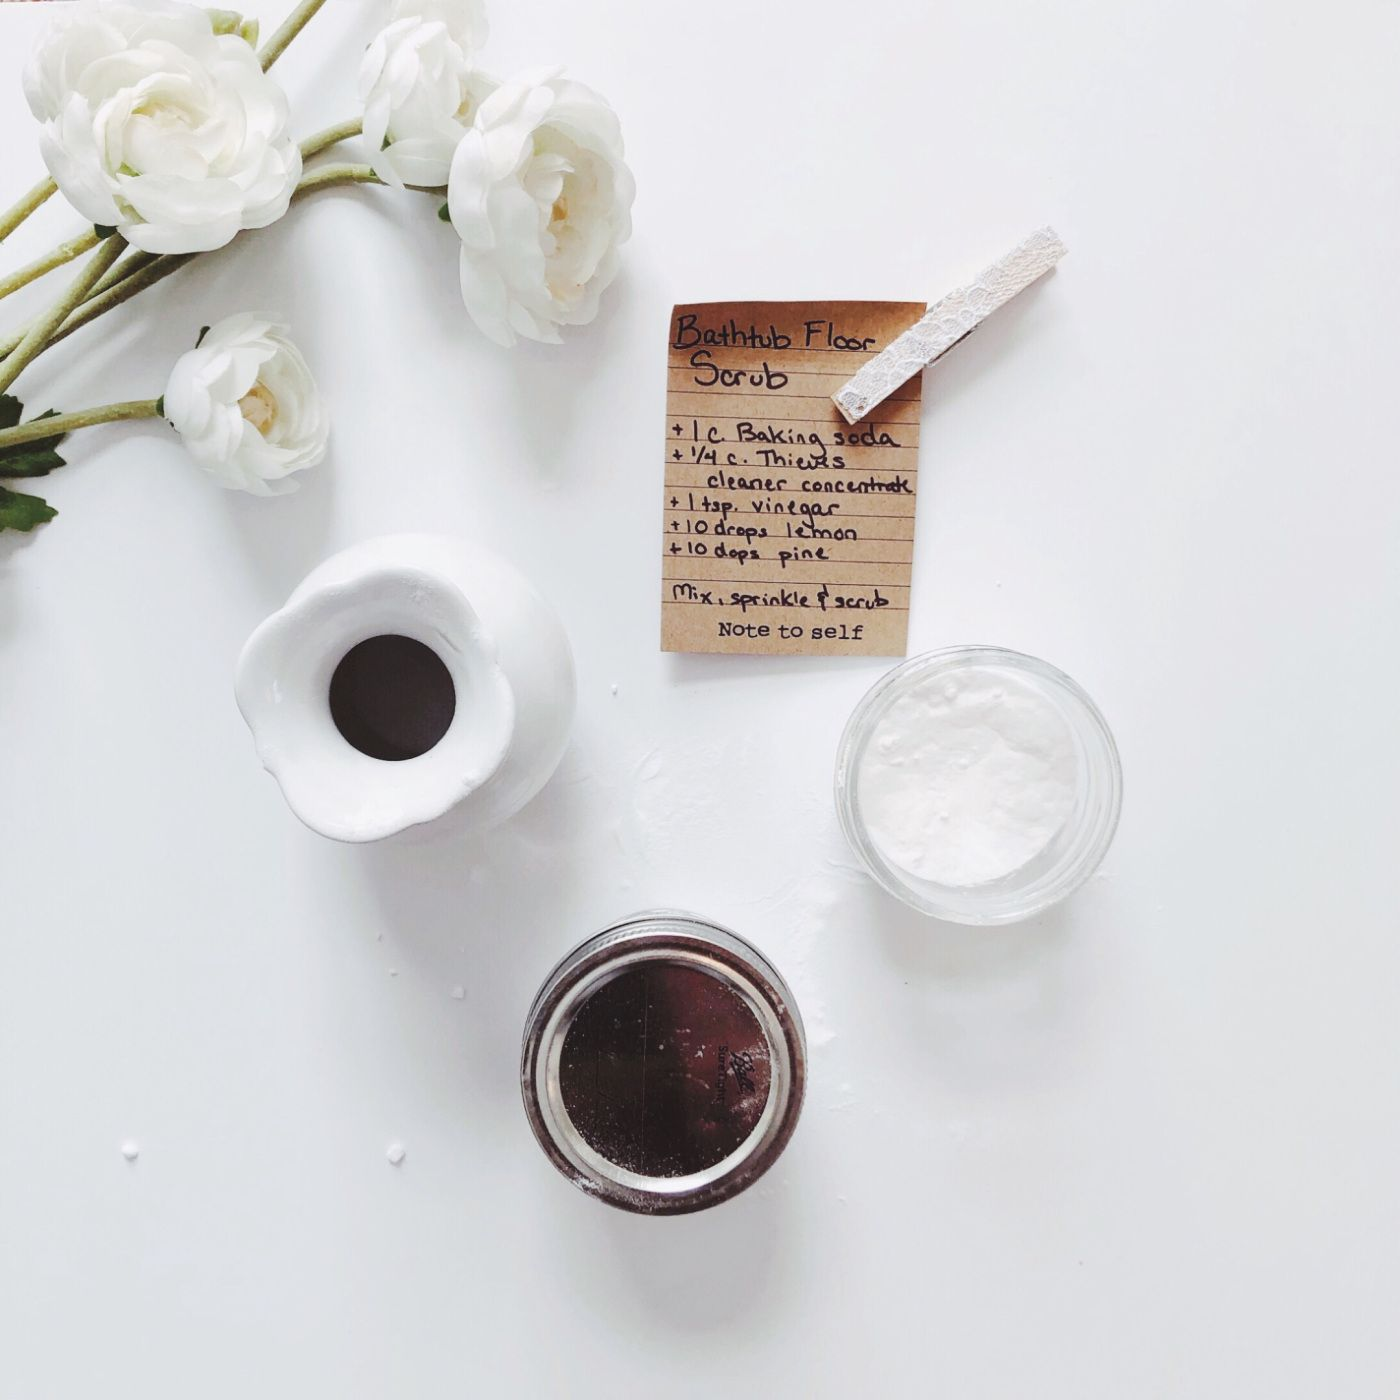 Up on the blog, essential oil DIY recipes like this